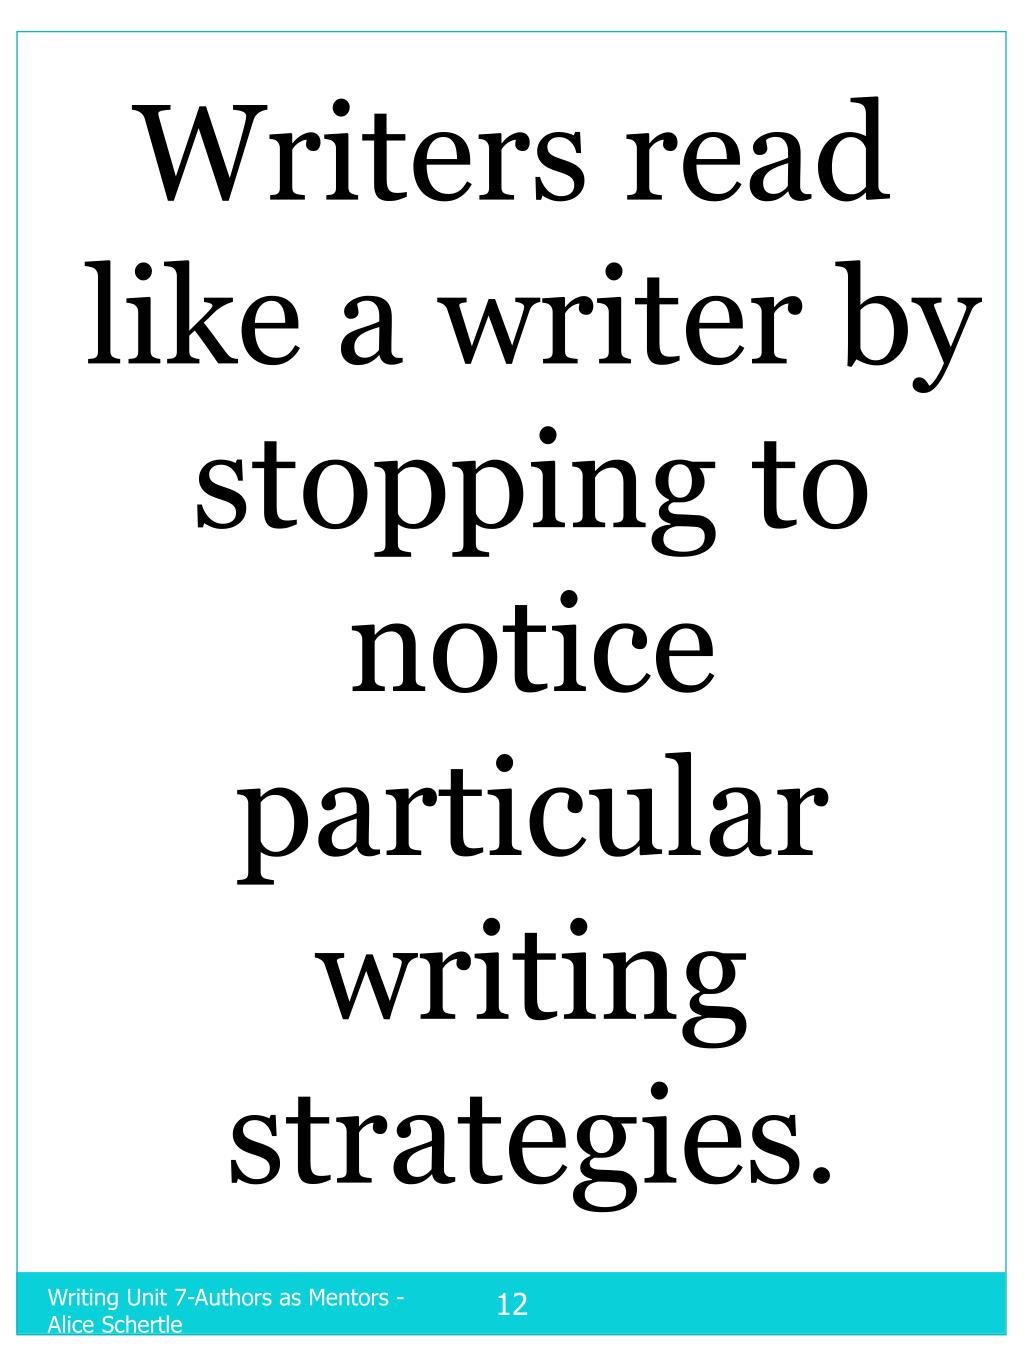 Writers read like a writer by stopping to notice     particular           writing strategies